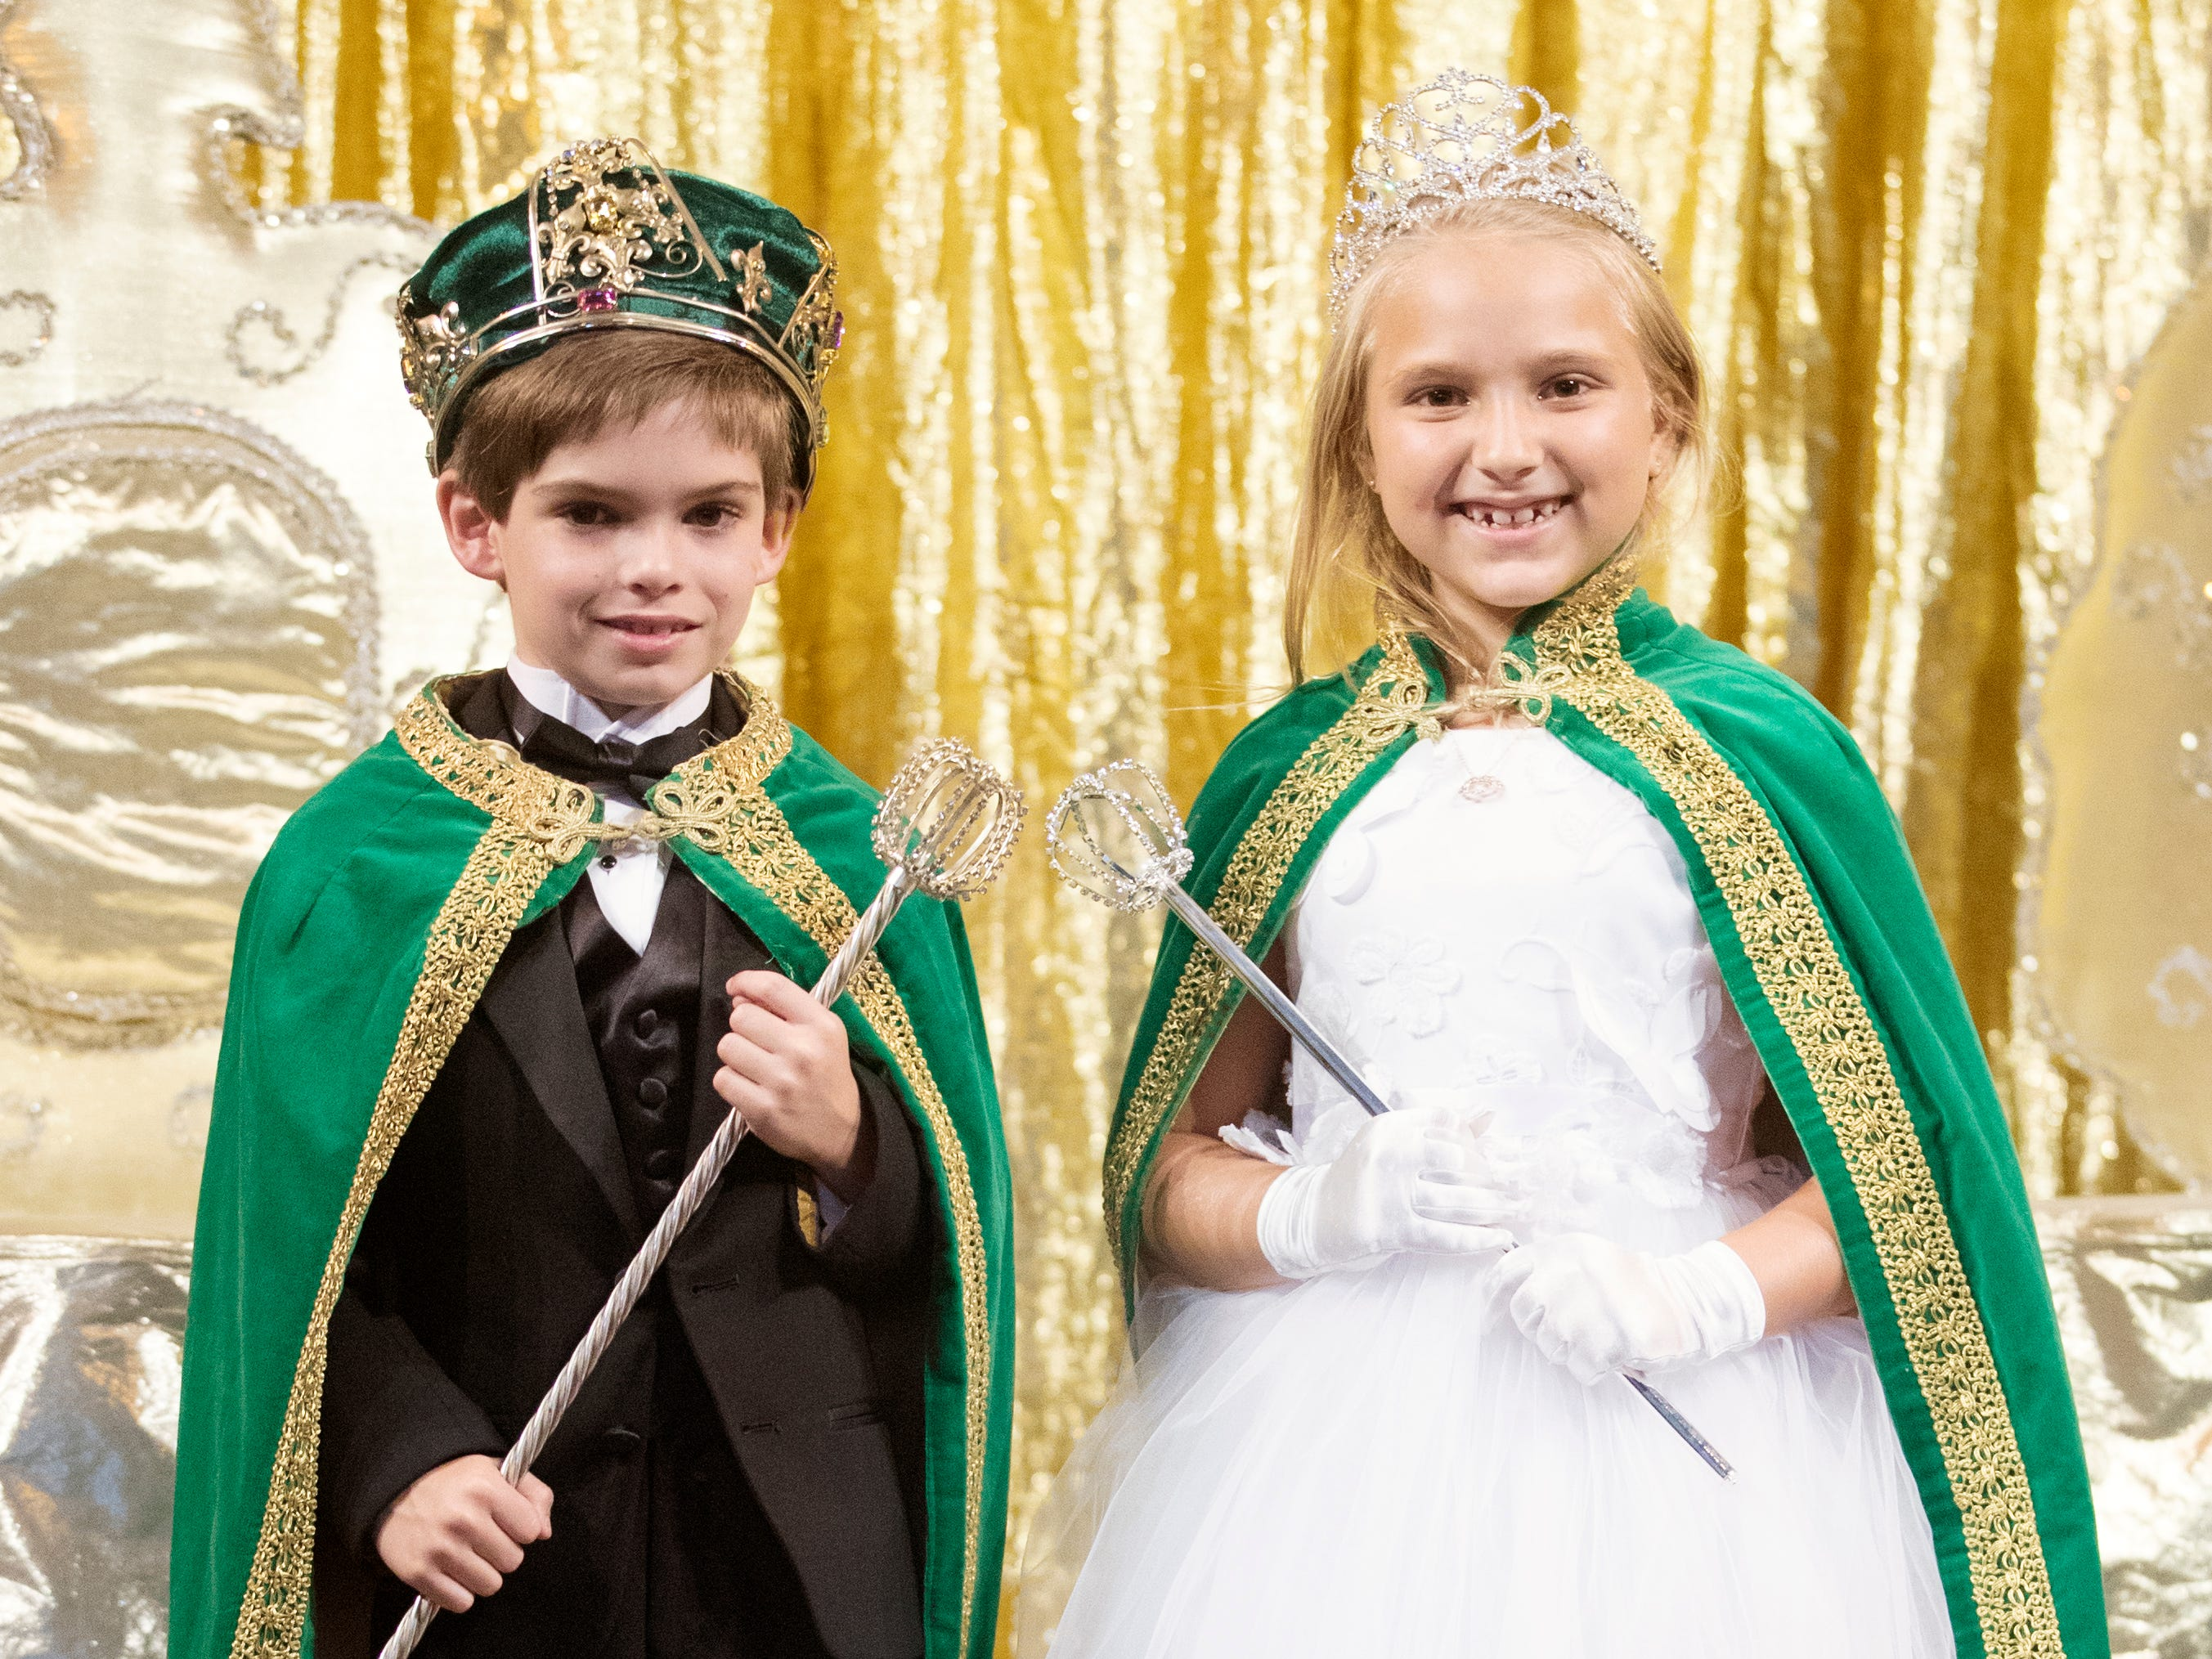 Andrew Mitchell Bechdel and Annabell Olivia VanHorn were named king and queen at the Edison Festival of Light Junior Coronation on Sunday at the Sydney and Berne Davis Art Center in downtown Fort Myers.